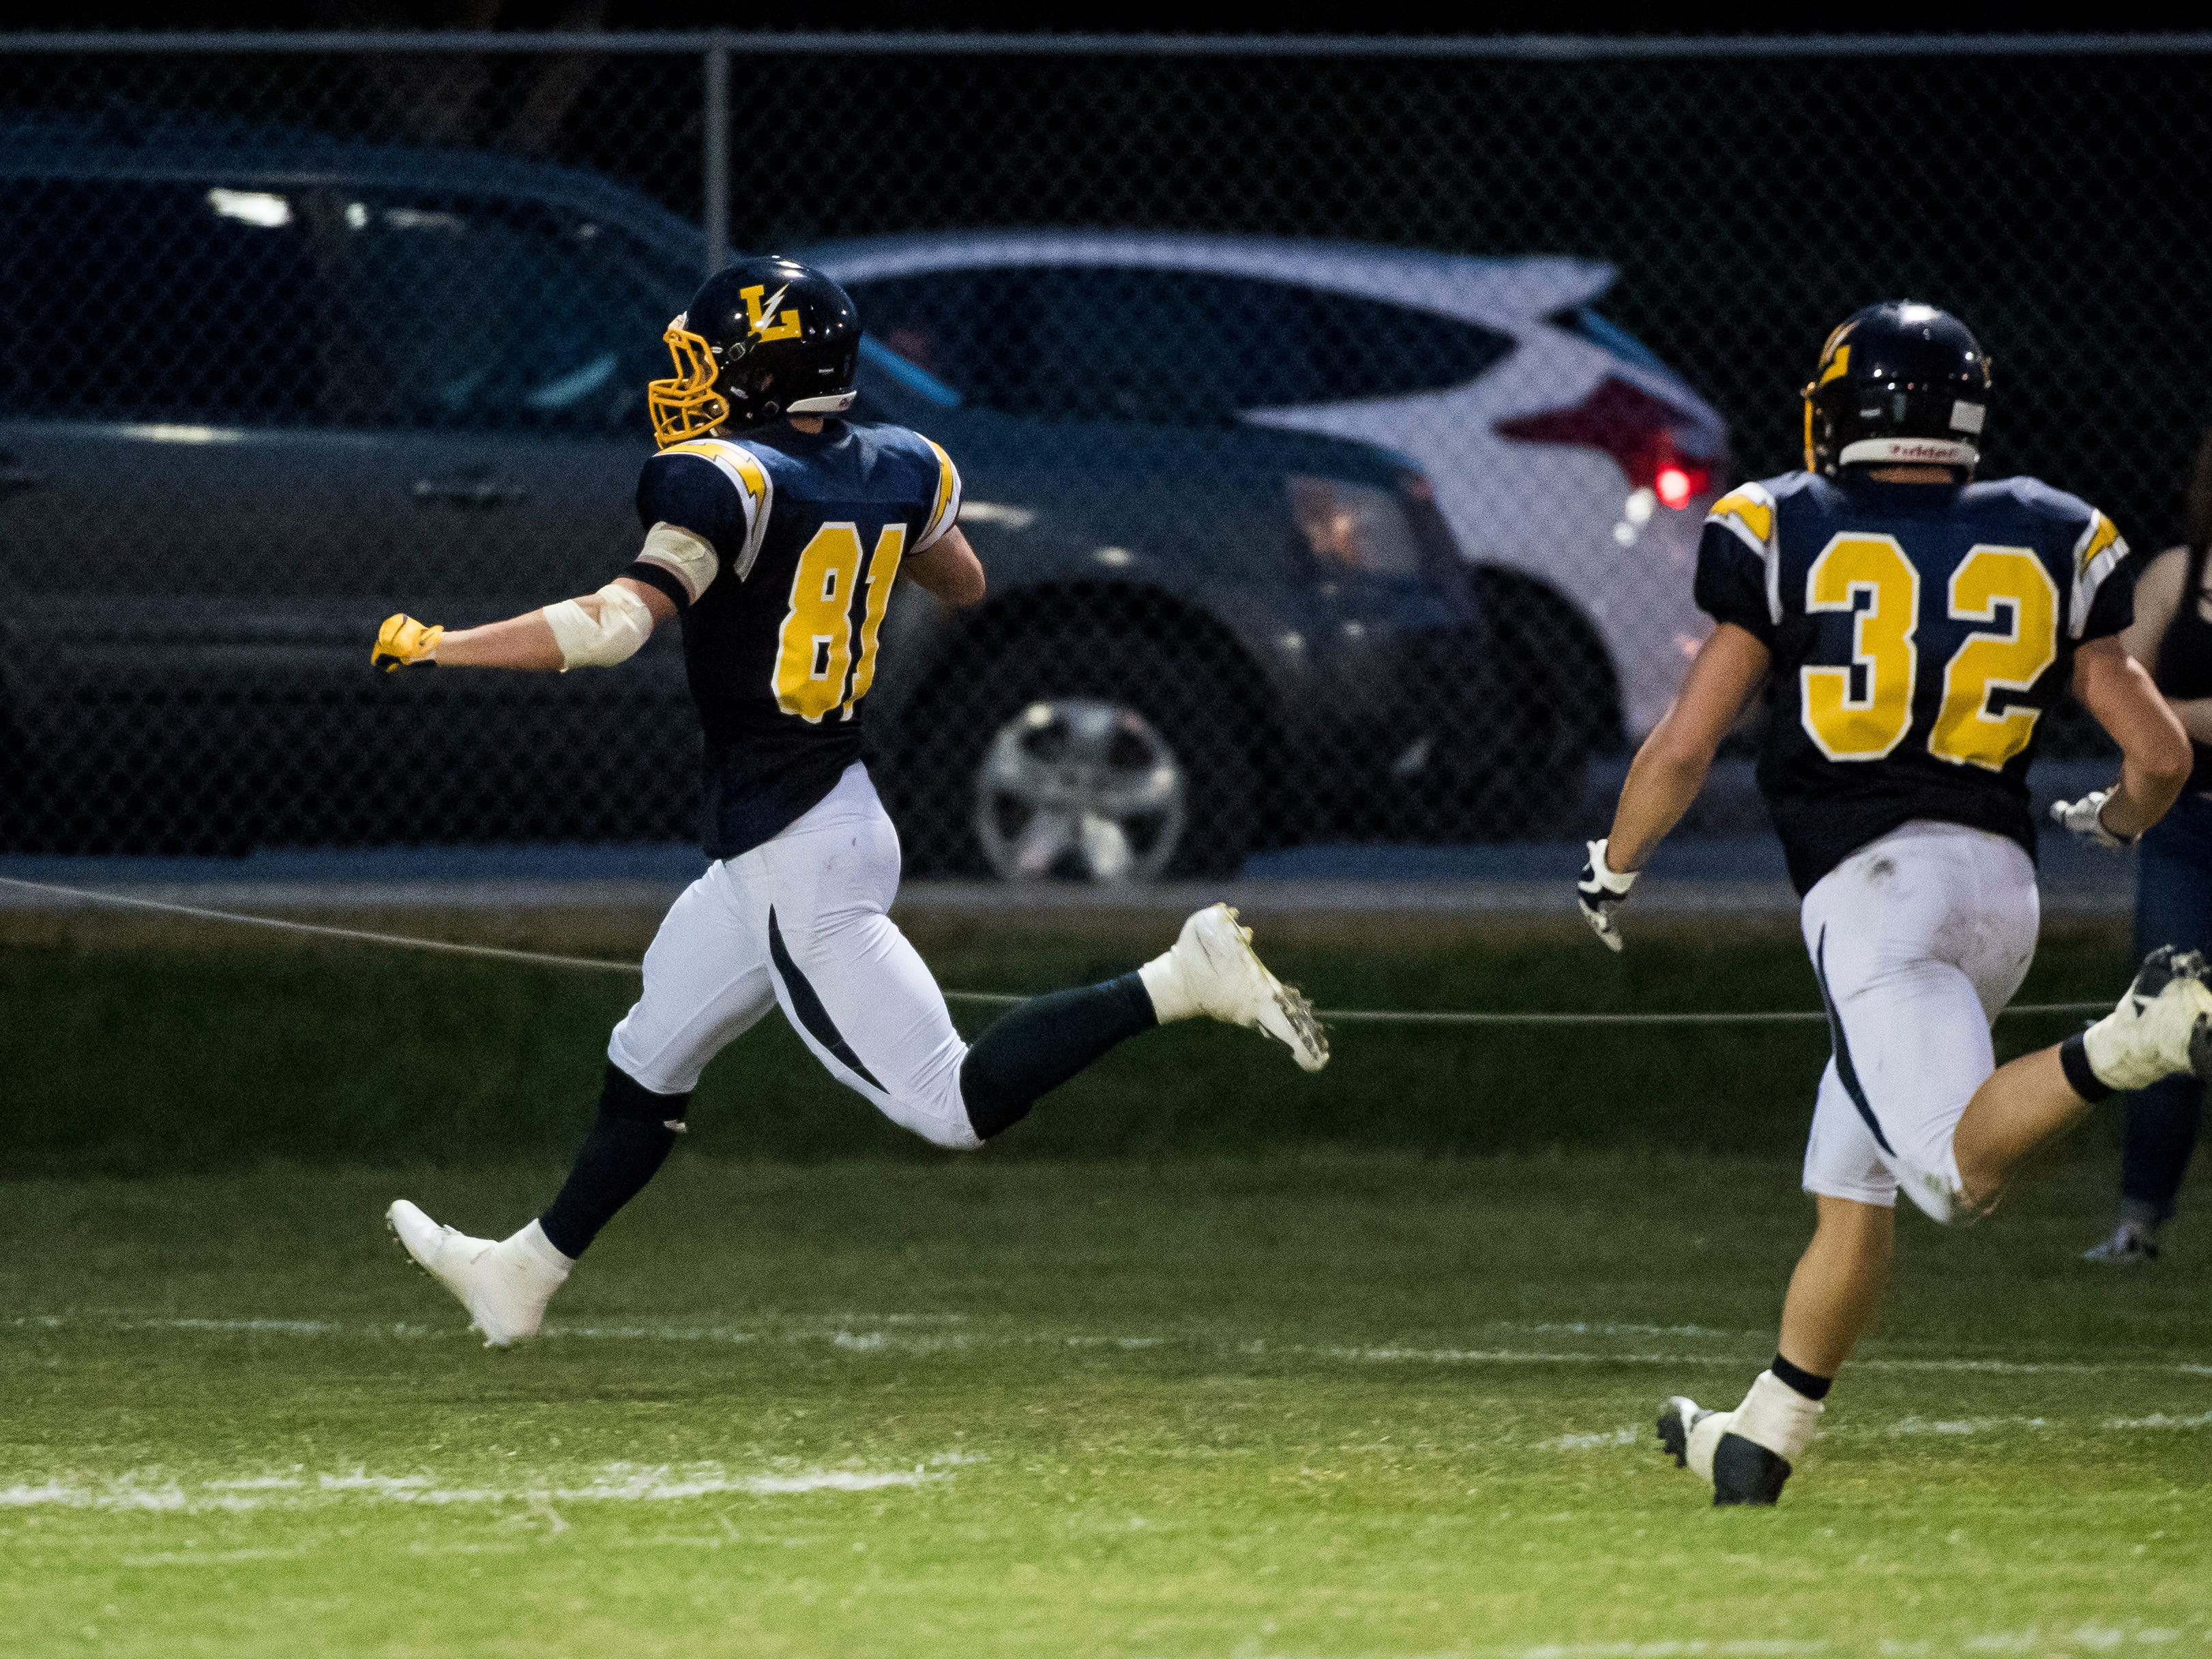 Littlestown's Brady McClintock runs into the endzone to score against Susquehannock on Friday, August 31, 2018. The Bolts beat the Warriors 29-14.